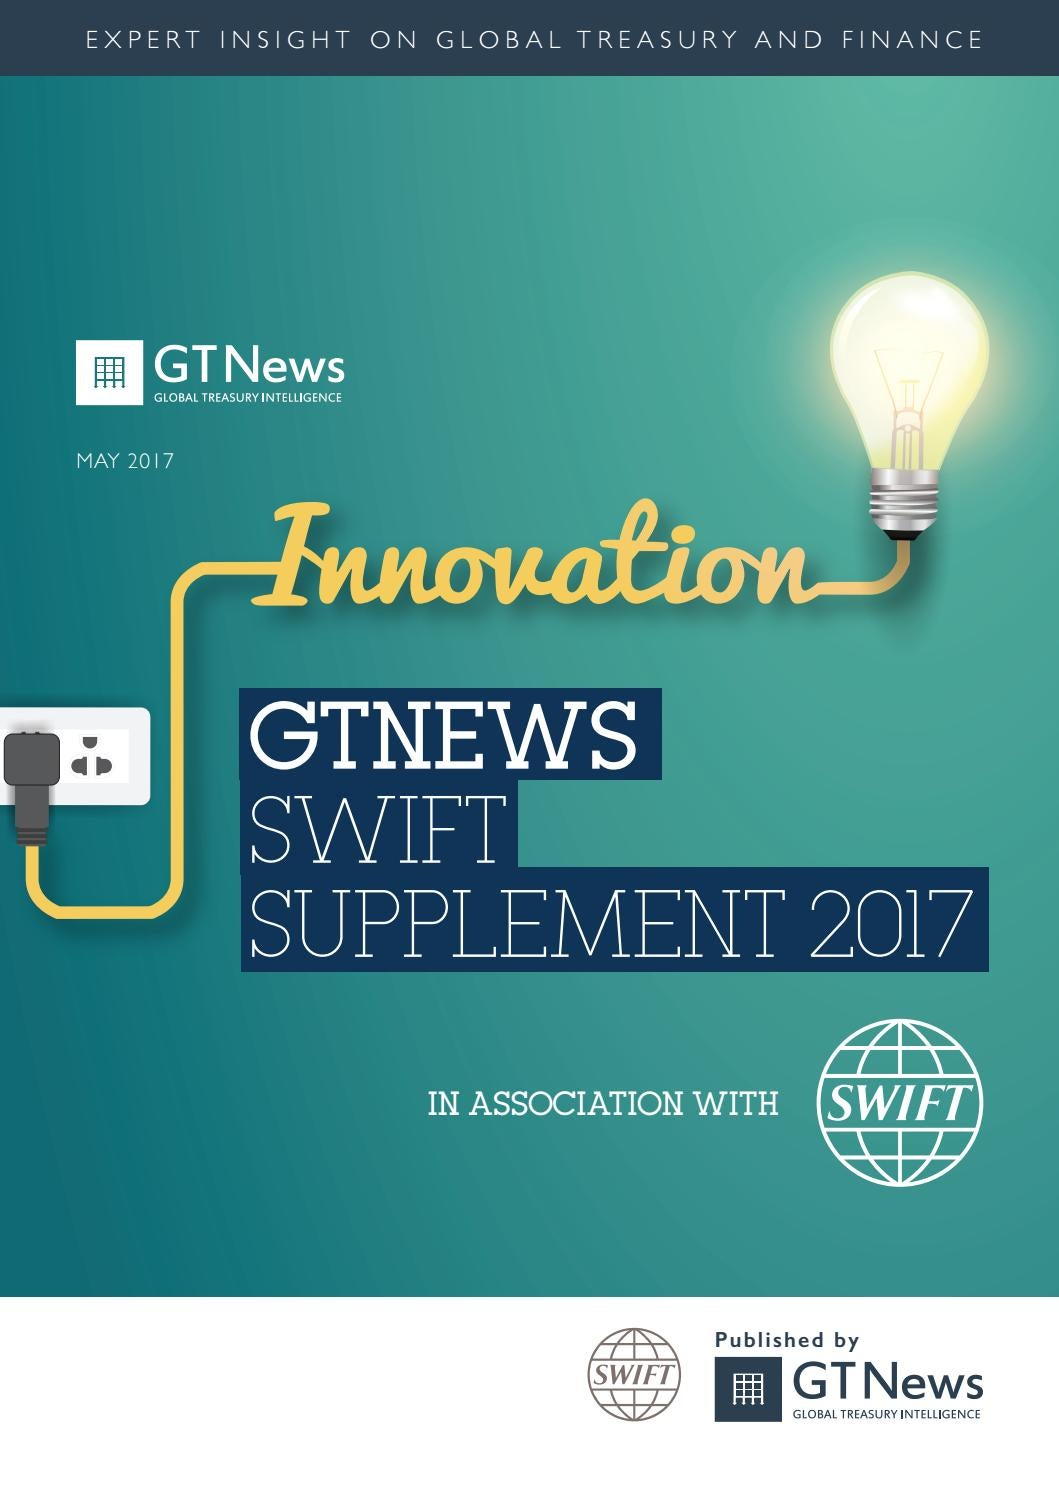 GTNews SWIFT Supplement 2017 By Bobsguide Issuu